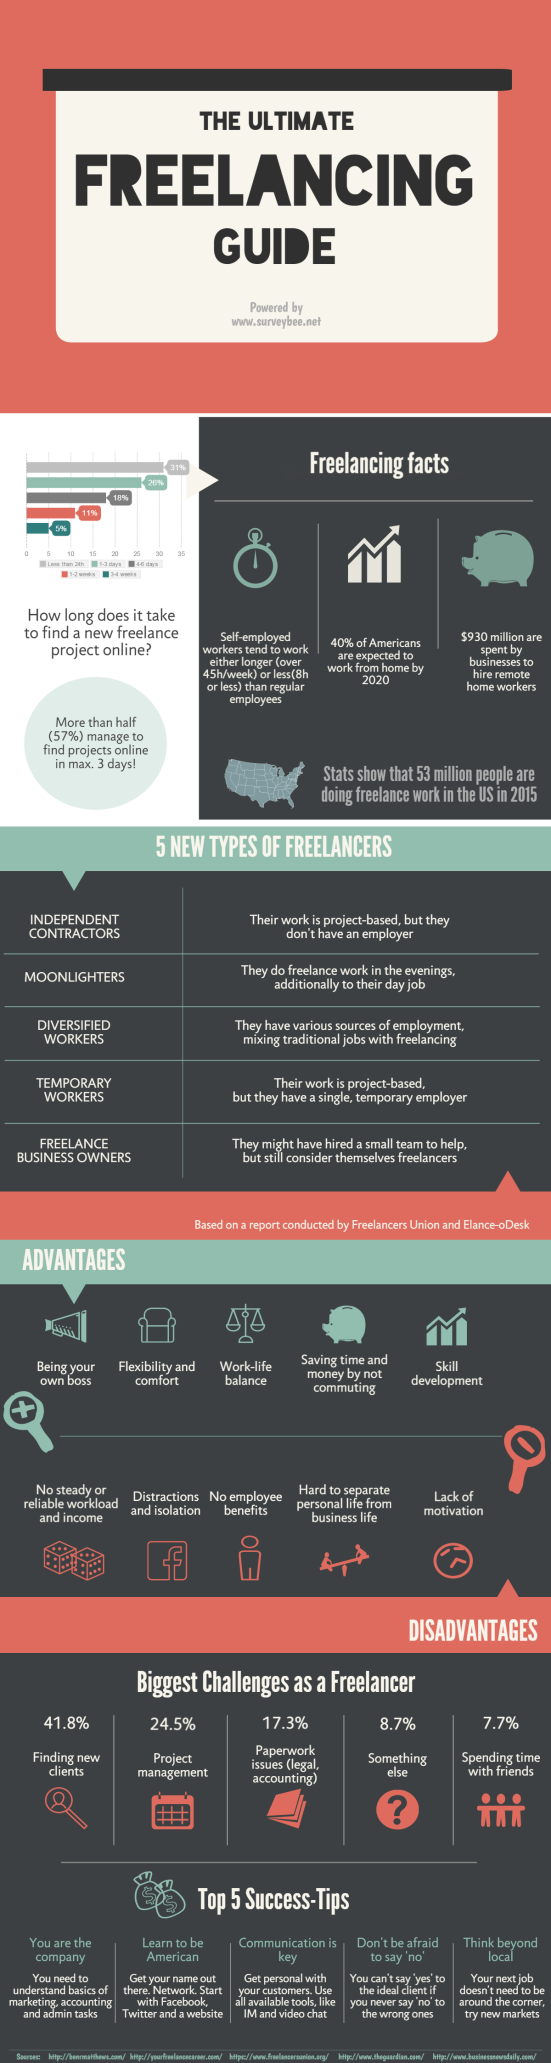 The_Ultimate_Freelancing_Guide